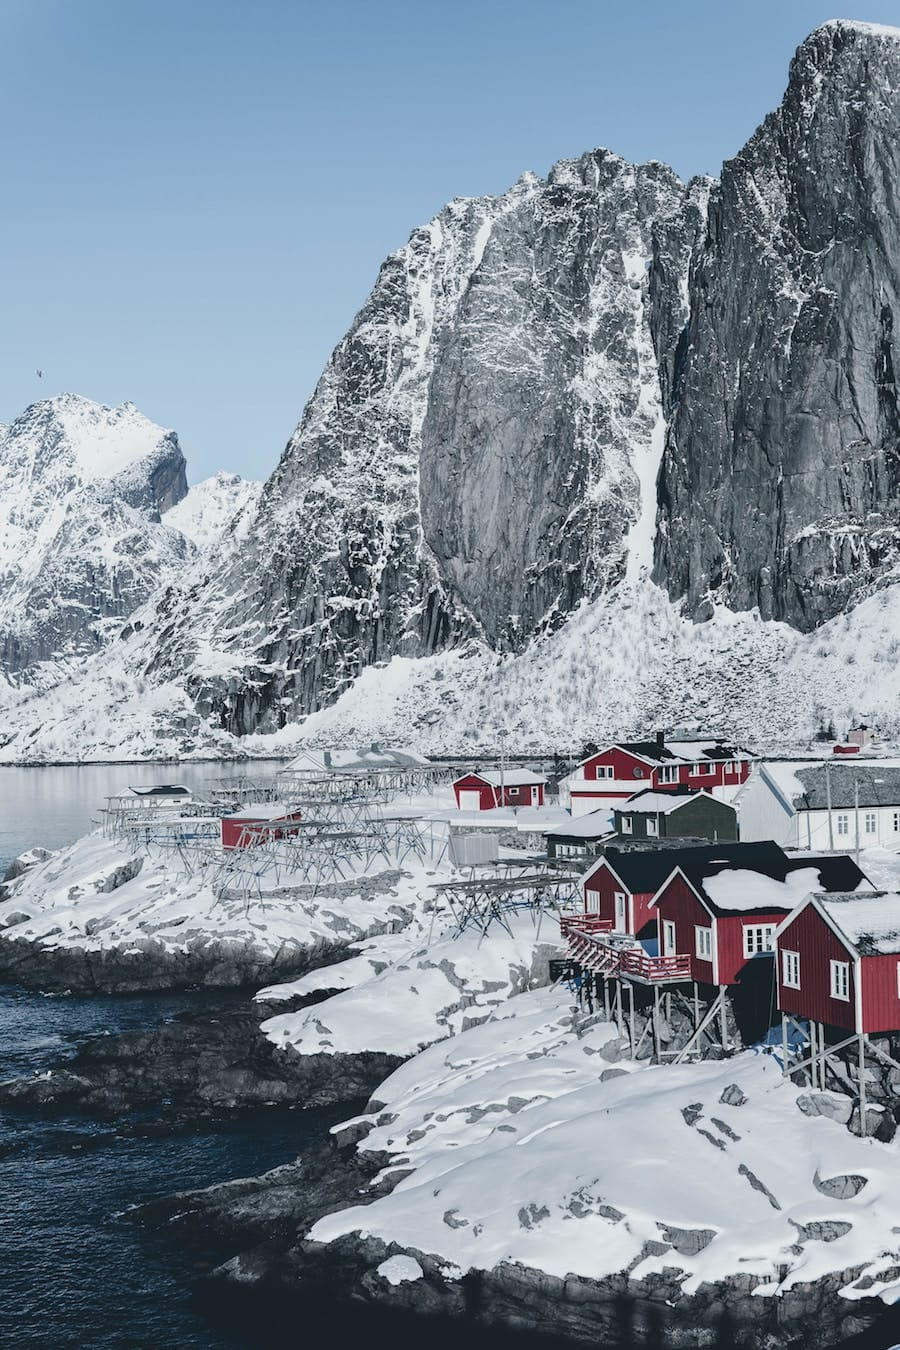 Things to do in Lofoten in winter - photography tour